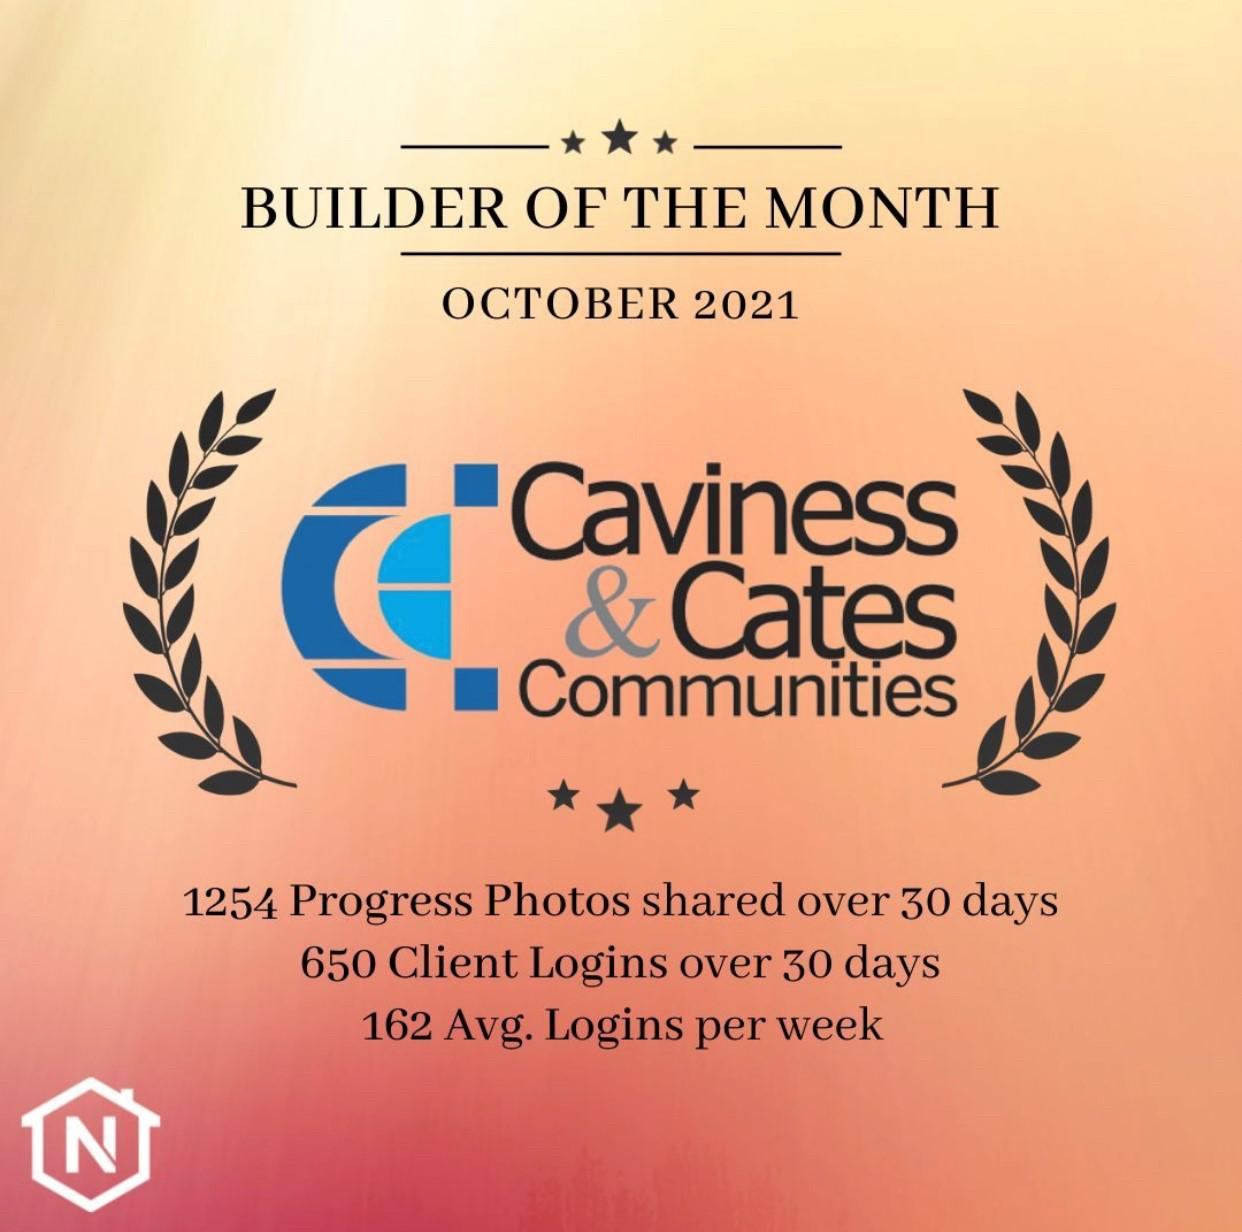 Caviness & Cates Builder of the Month at NoviHome